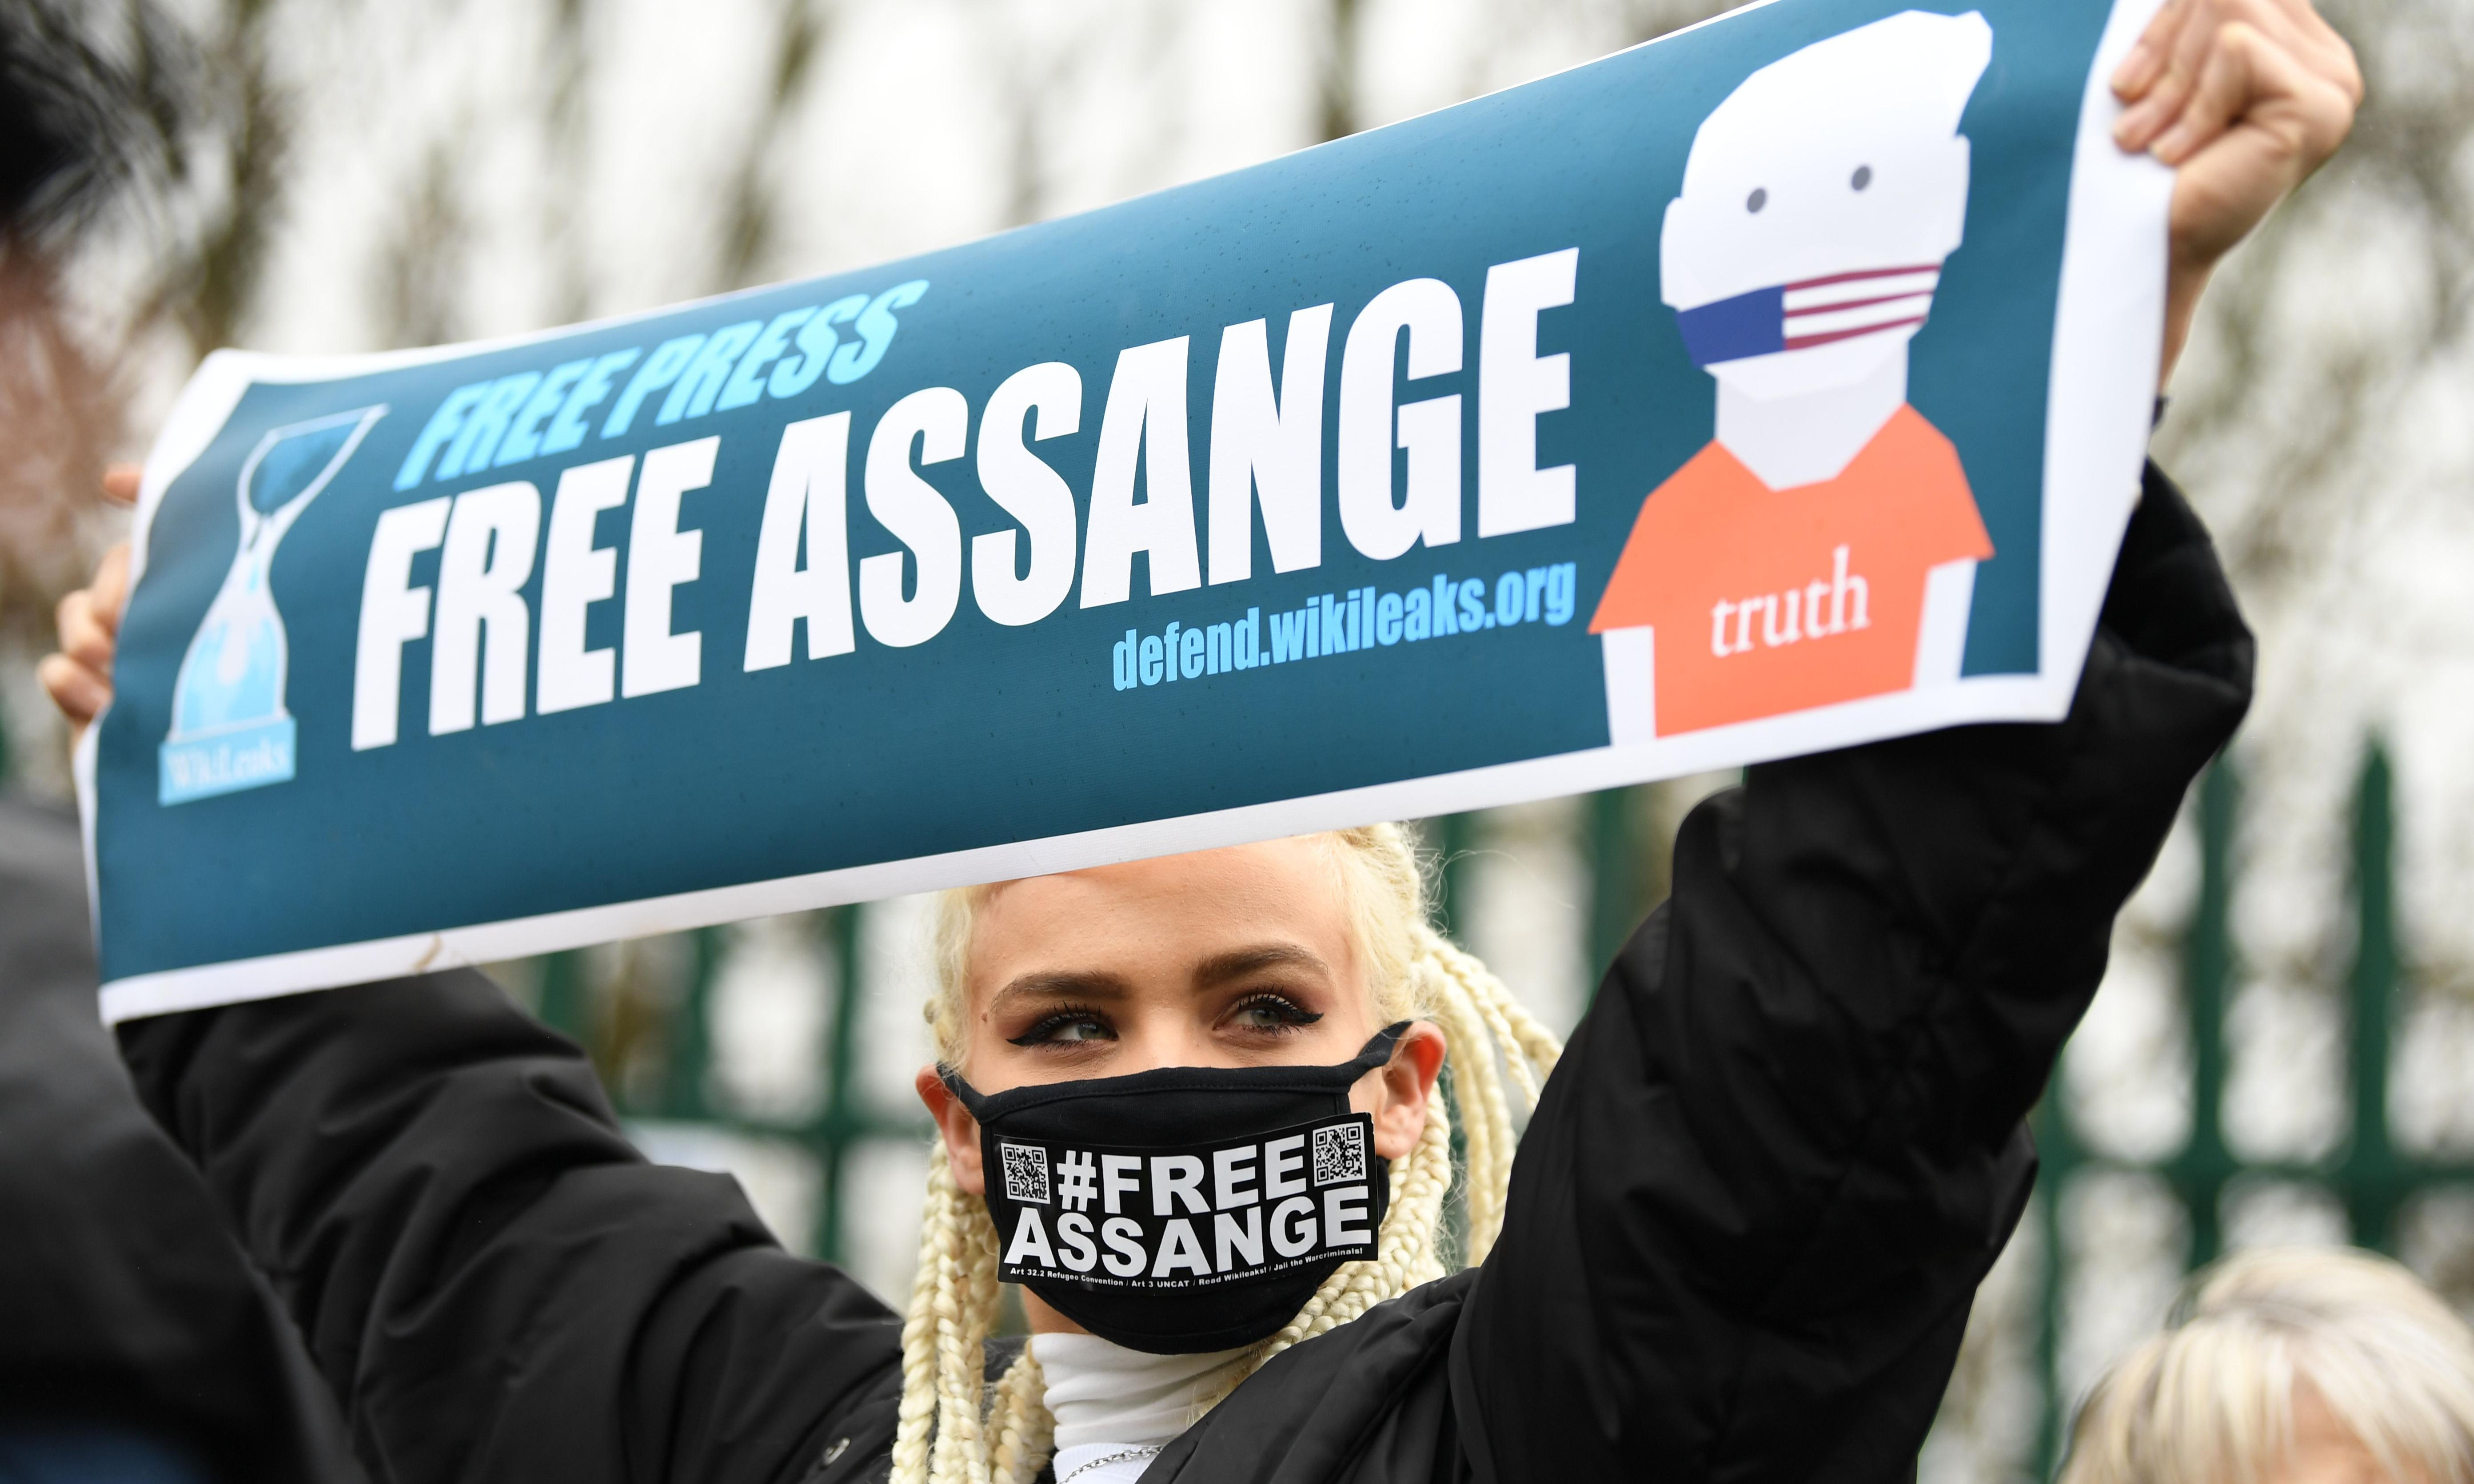 Julian Assange hearing: 'journalism is no excuse for breaking law'